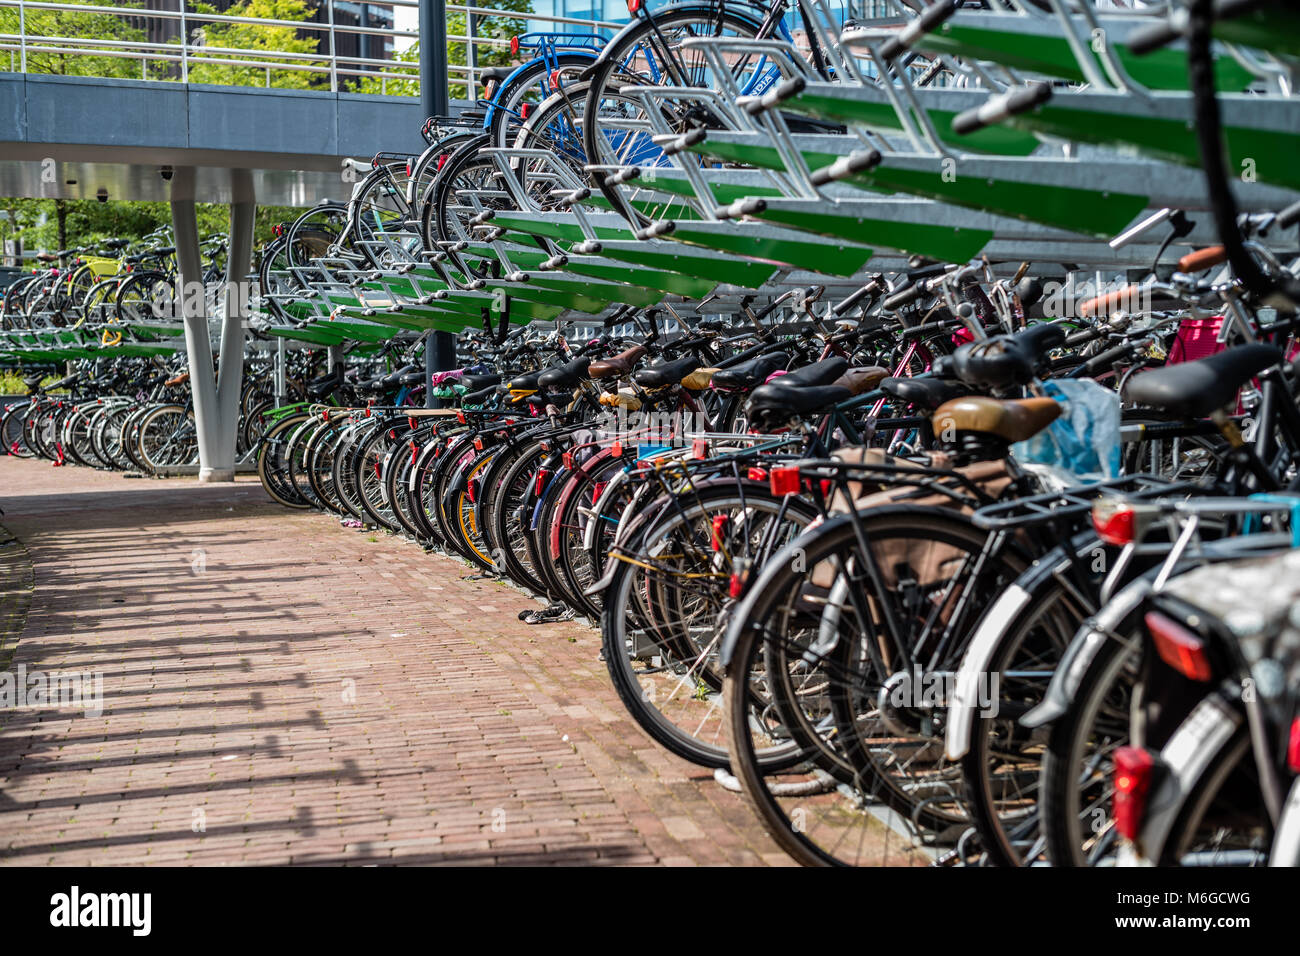 The bicycles parking - Stock Image